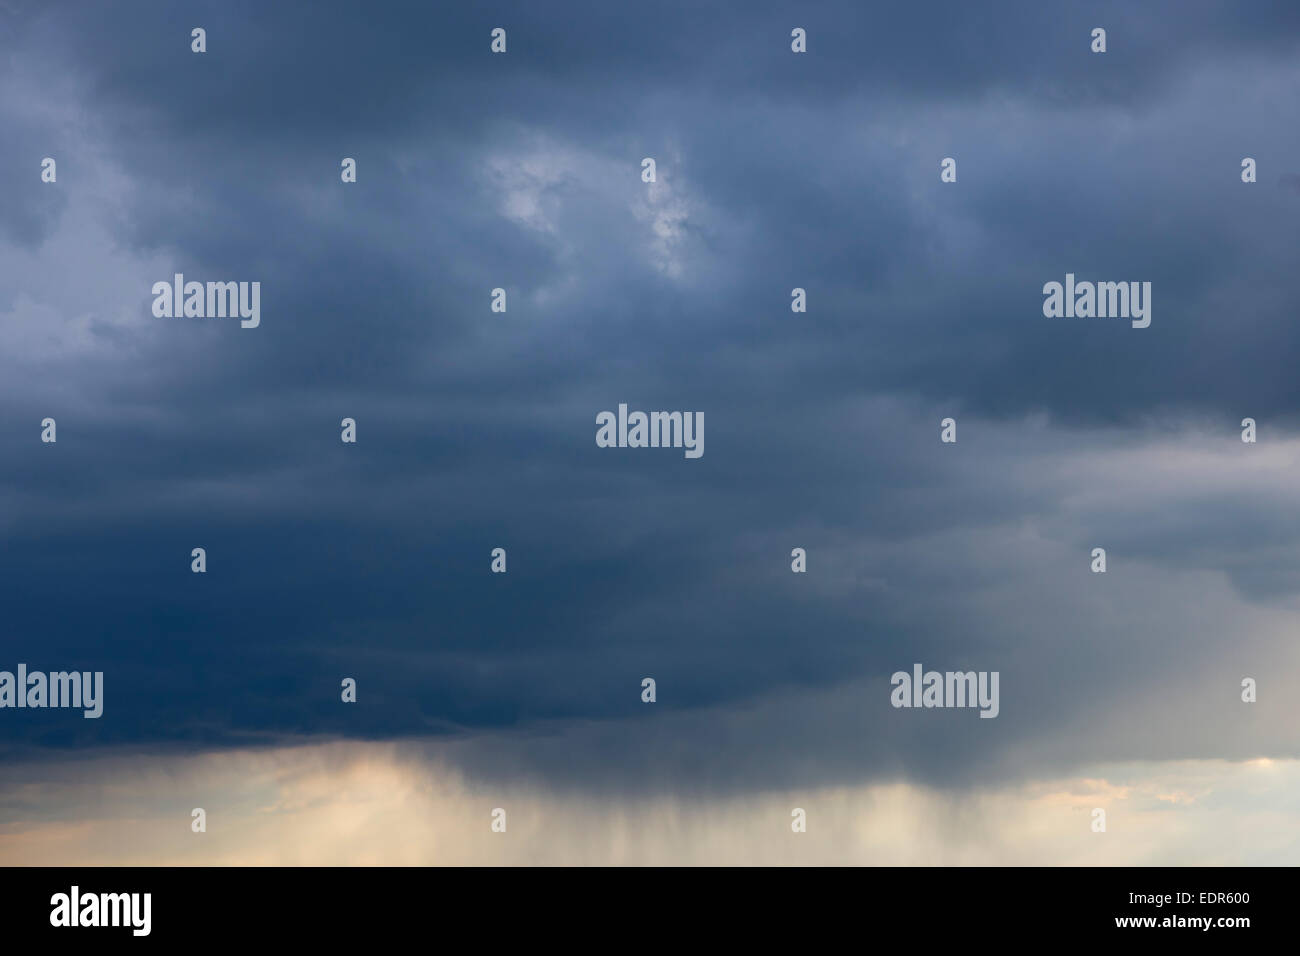 Dark stormy leaden sky with rain cloud forecasts inclement bad weather in Oxfordshire, United Kingdom - Stock Image